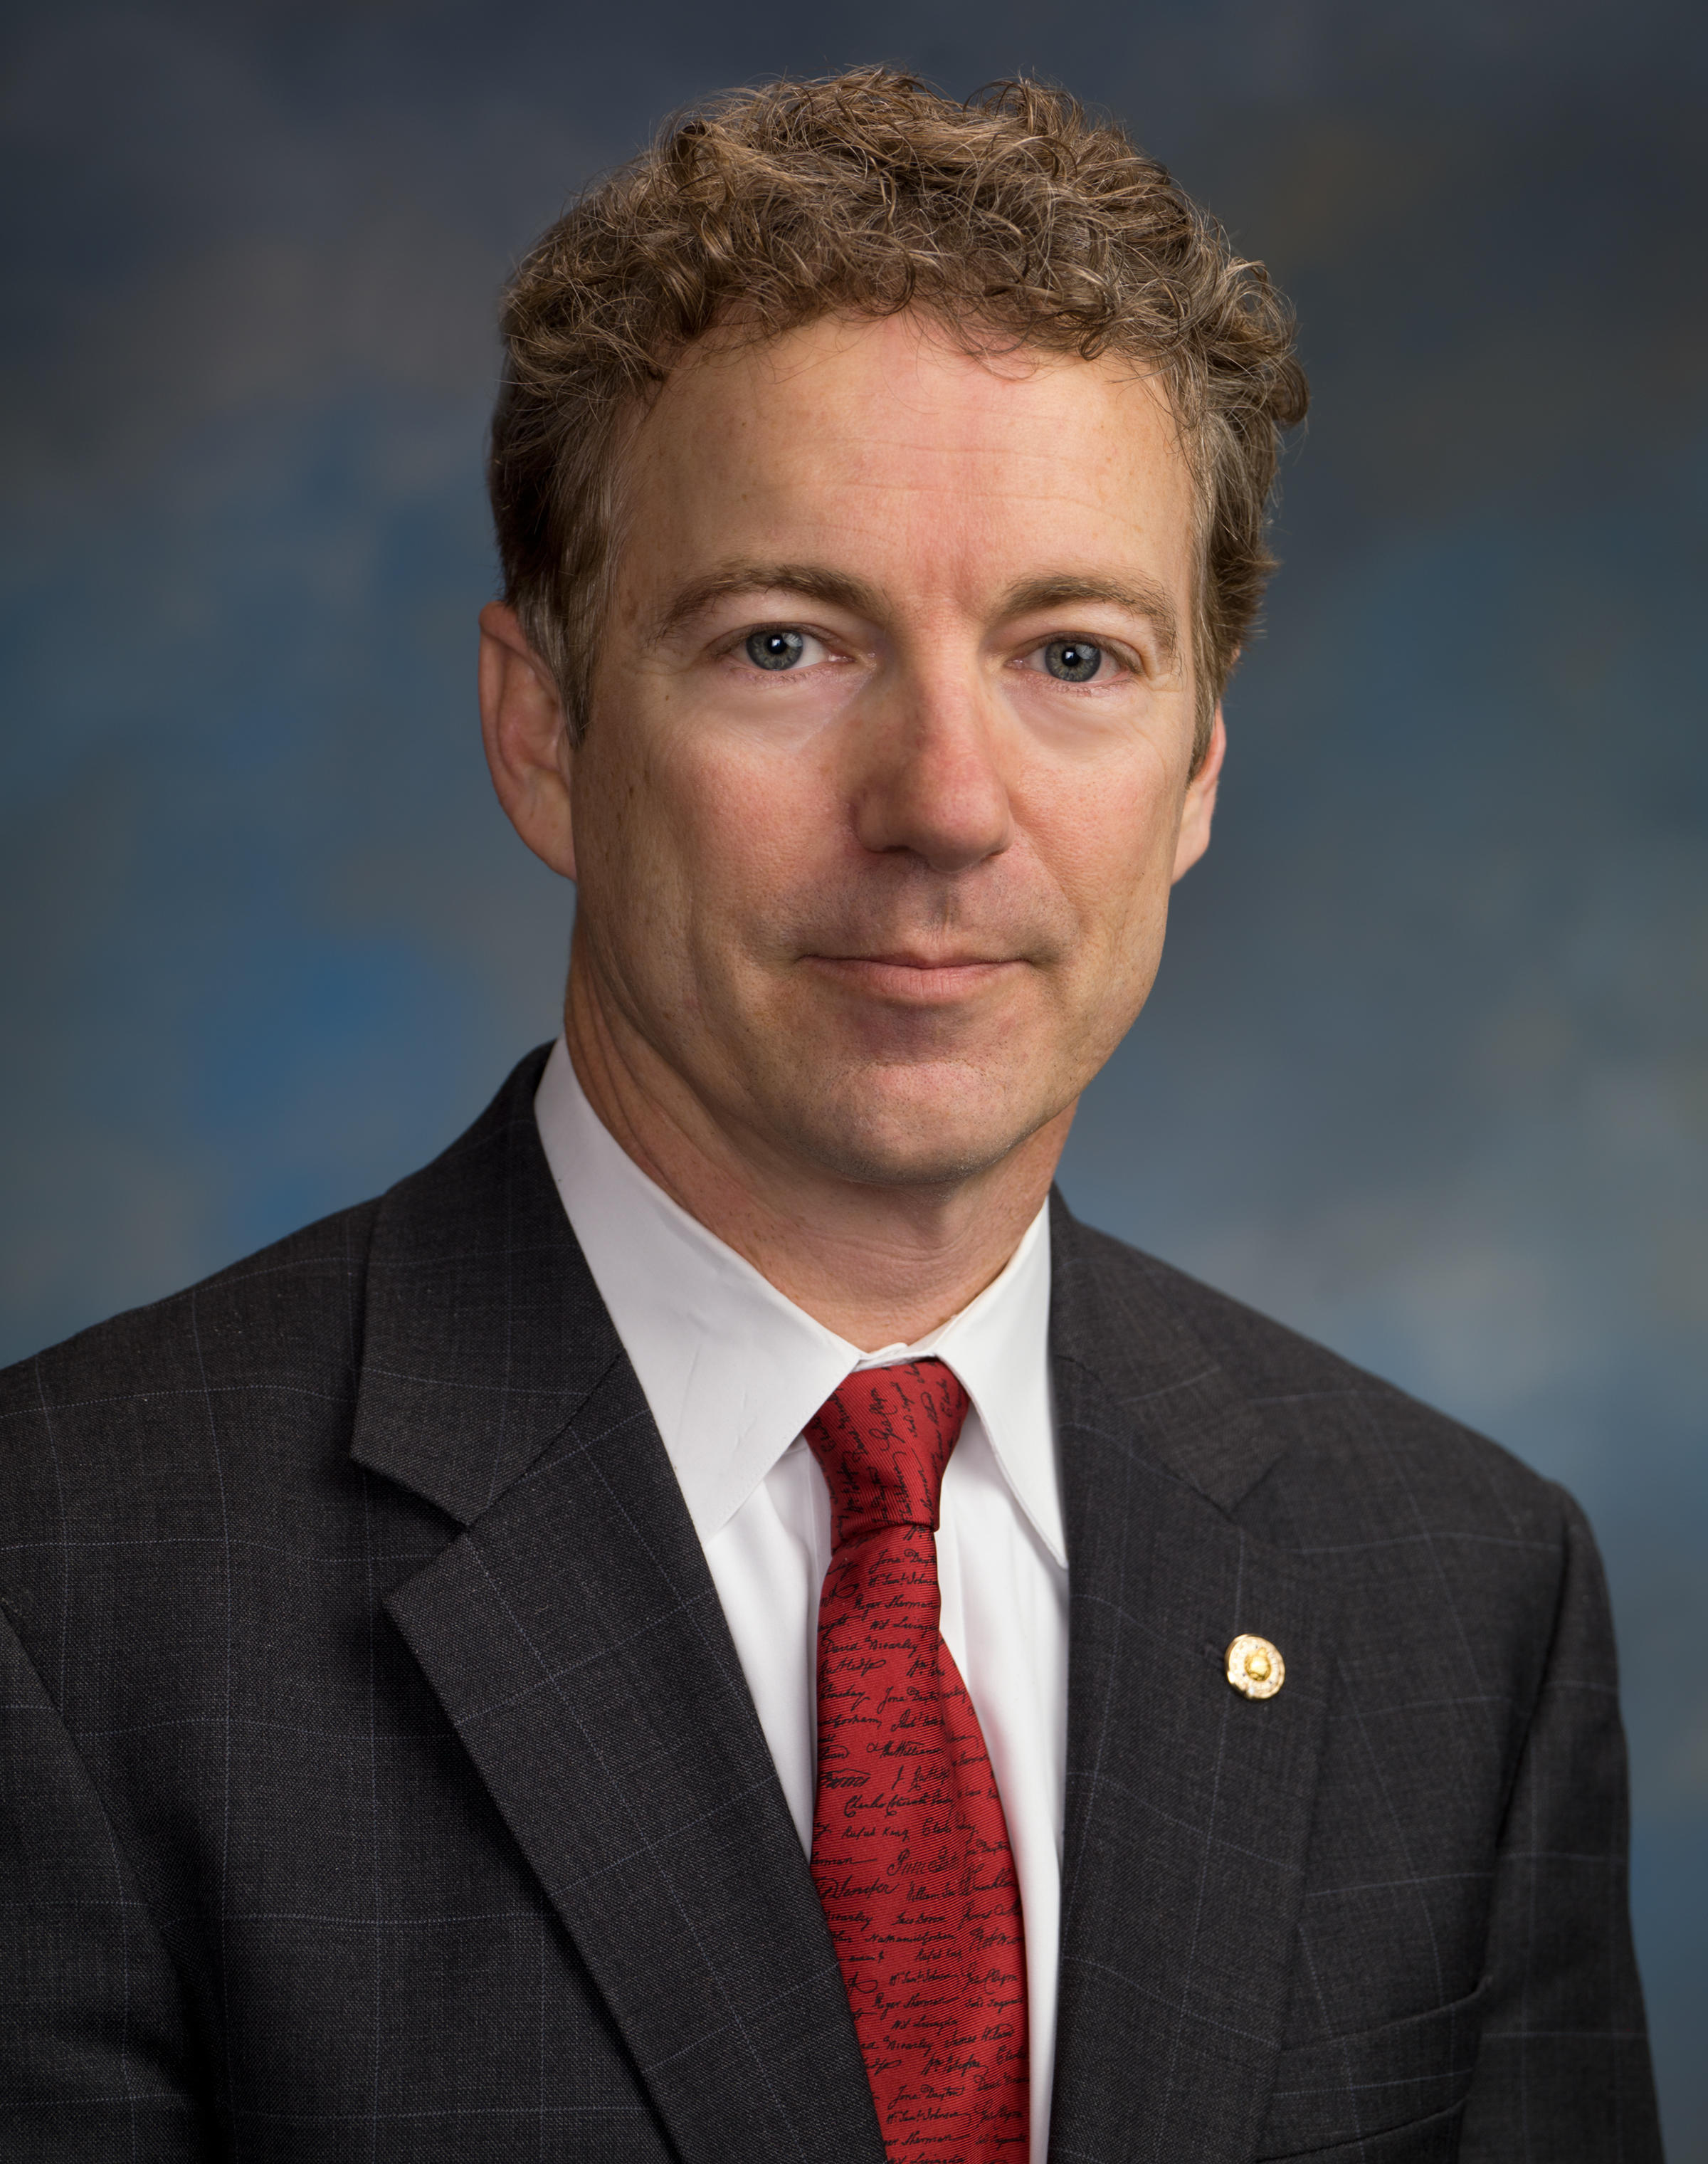 Republican Senator Paul threatens 'no' vote on budget plan